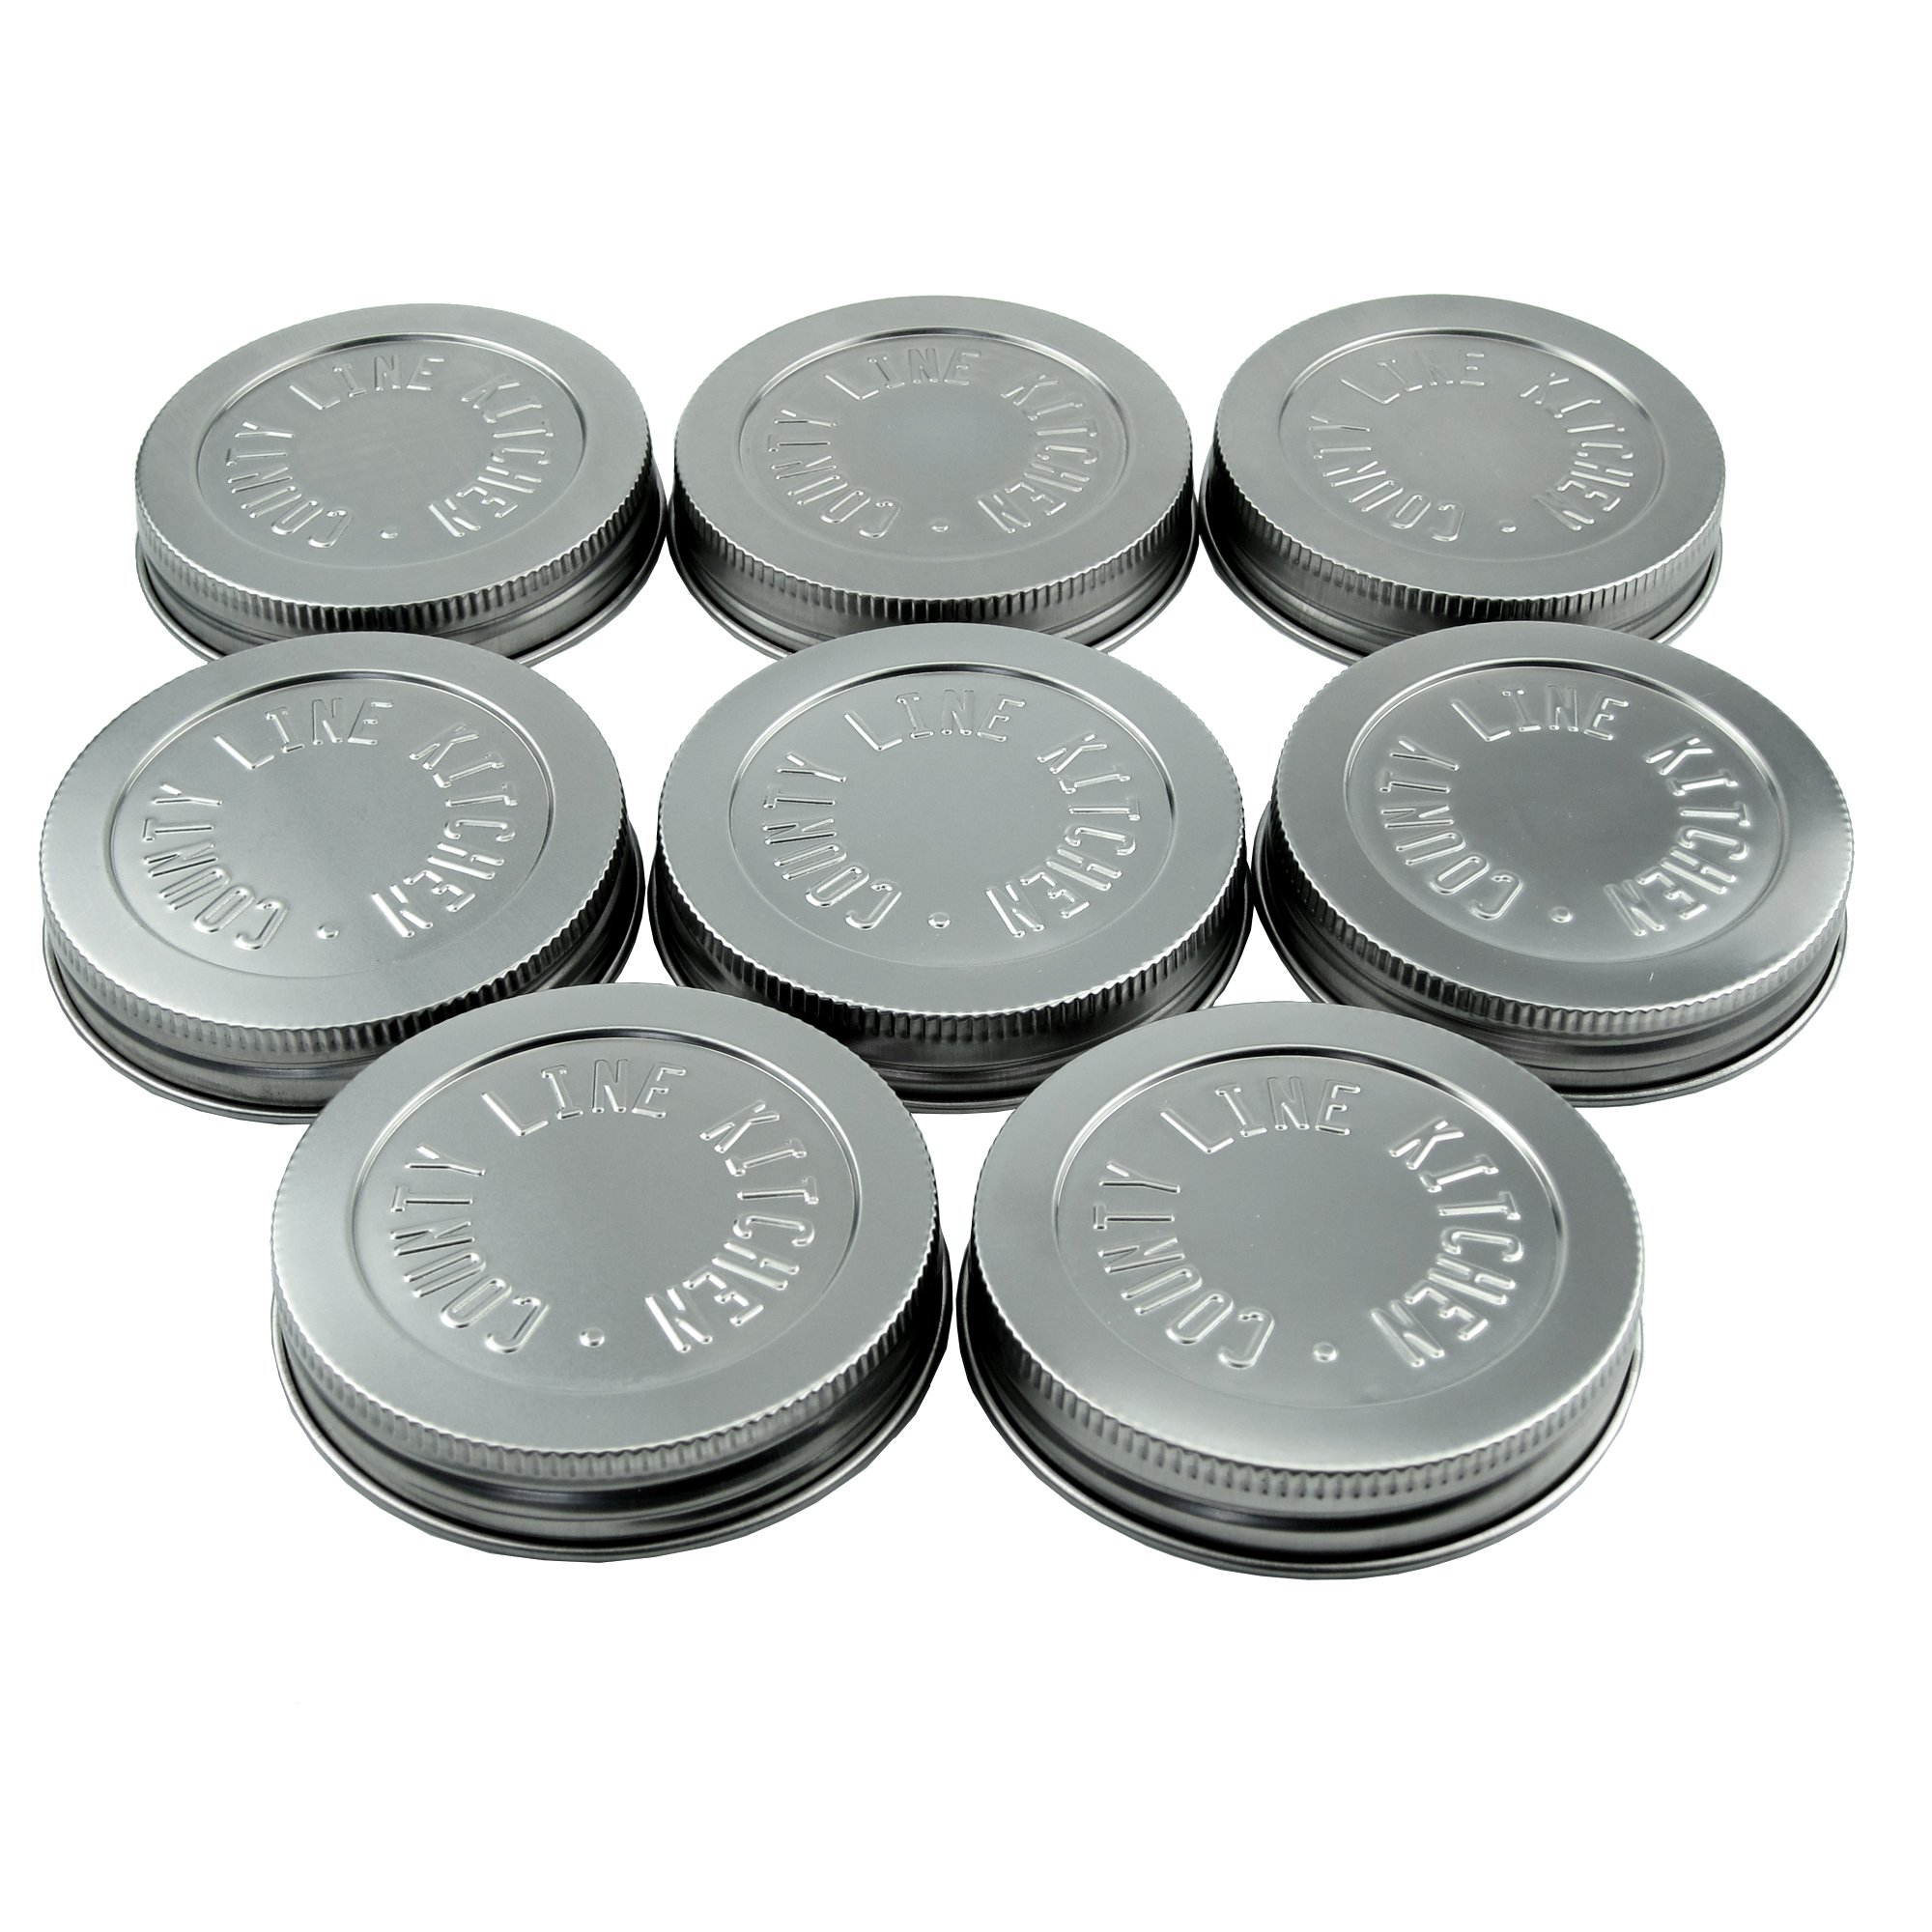 Heavy Duty Stainless Steel Mason Jar Lids by County Line Kitchen with Leak Proof, Easy Opening Seals, Wide Mouth, 8 Pack by County Line Kitchen